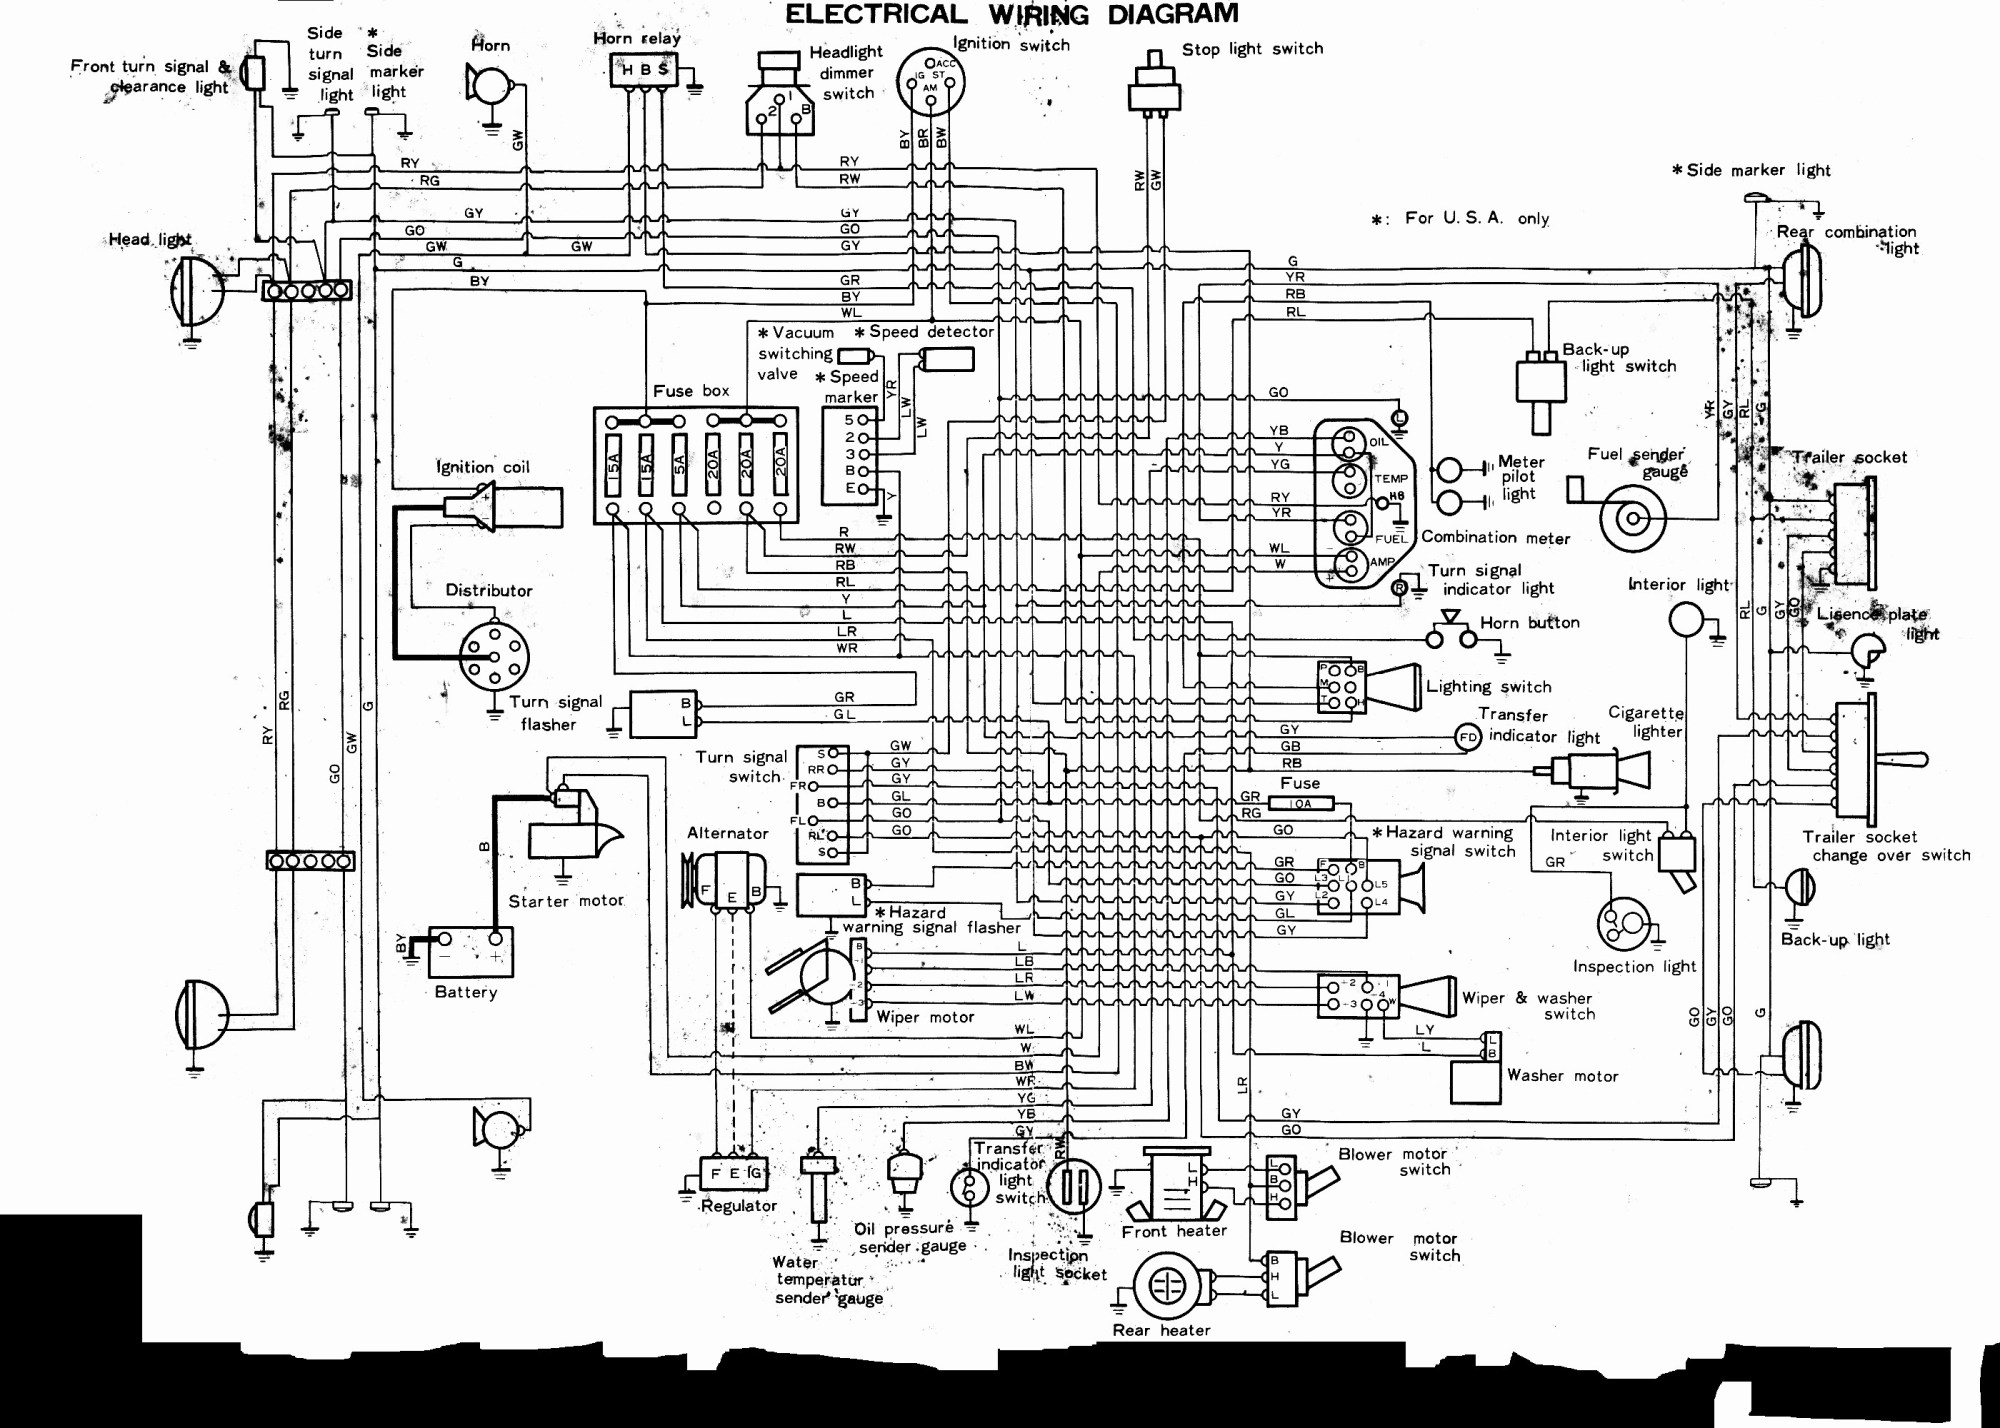 hight resolution of chrysler concorde alarm wiring diagram wiring diagrams valuechrysler 2 7 engine diagram wiring diagram inside chrysler